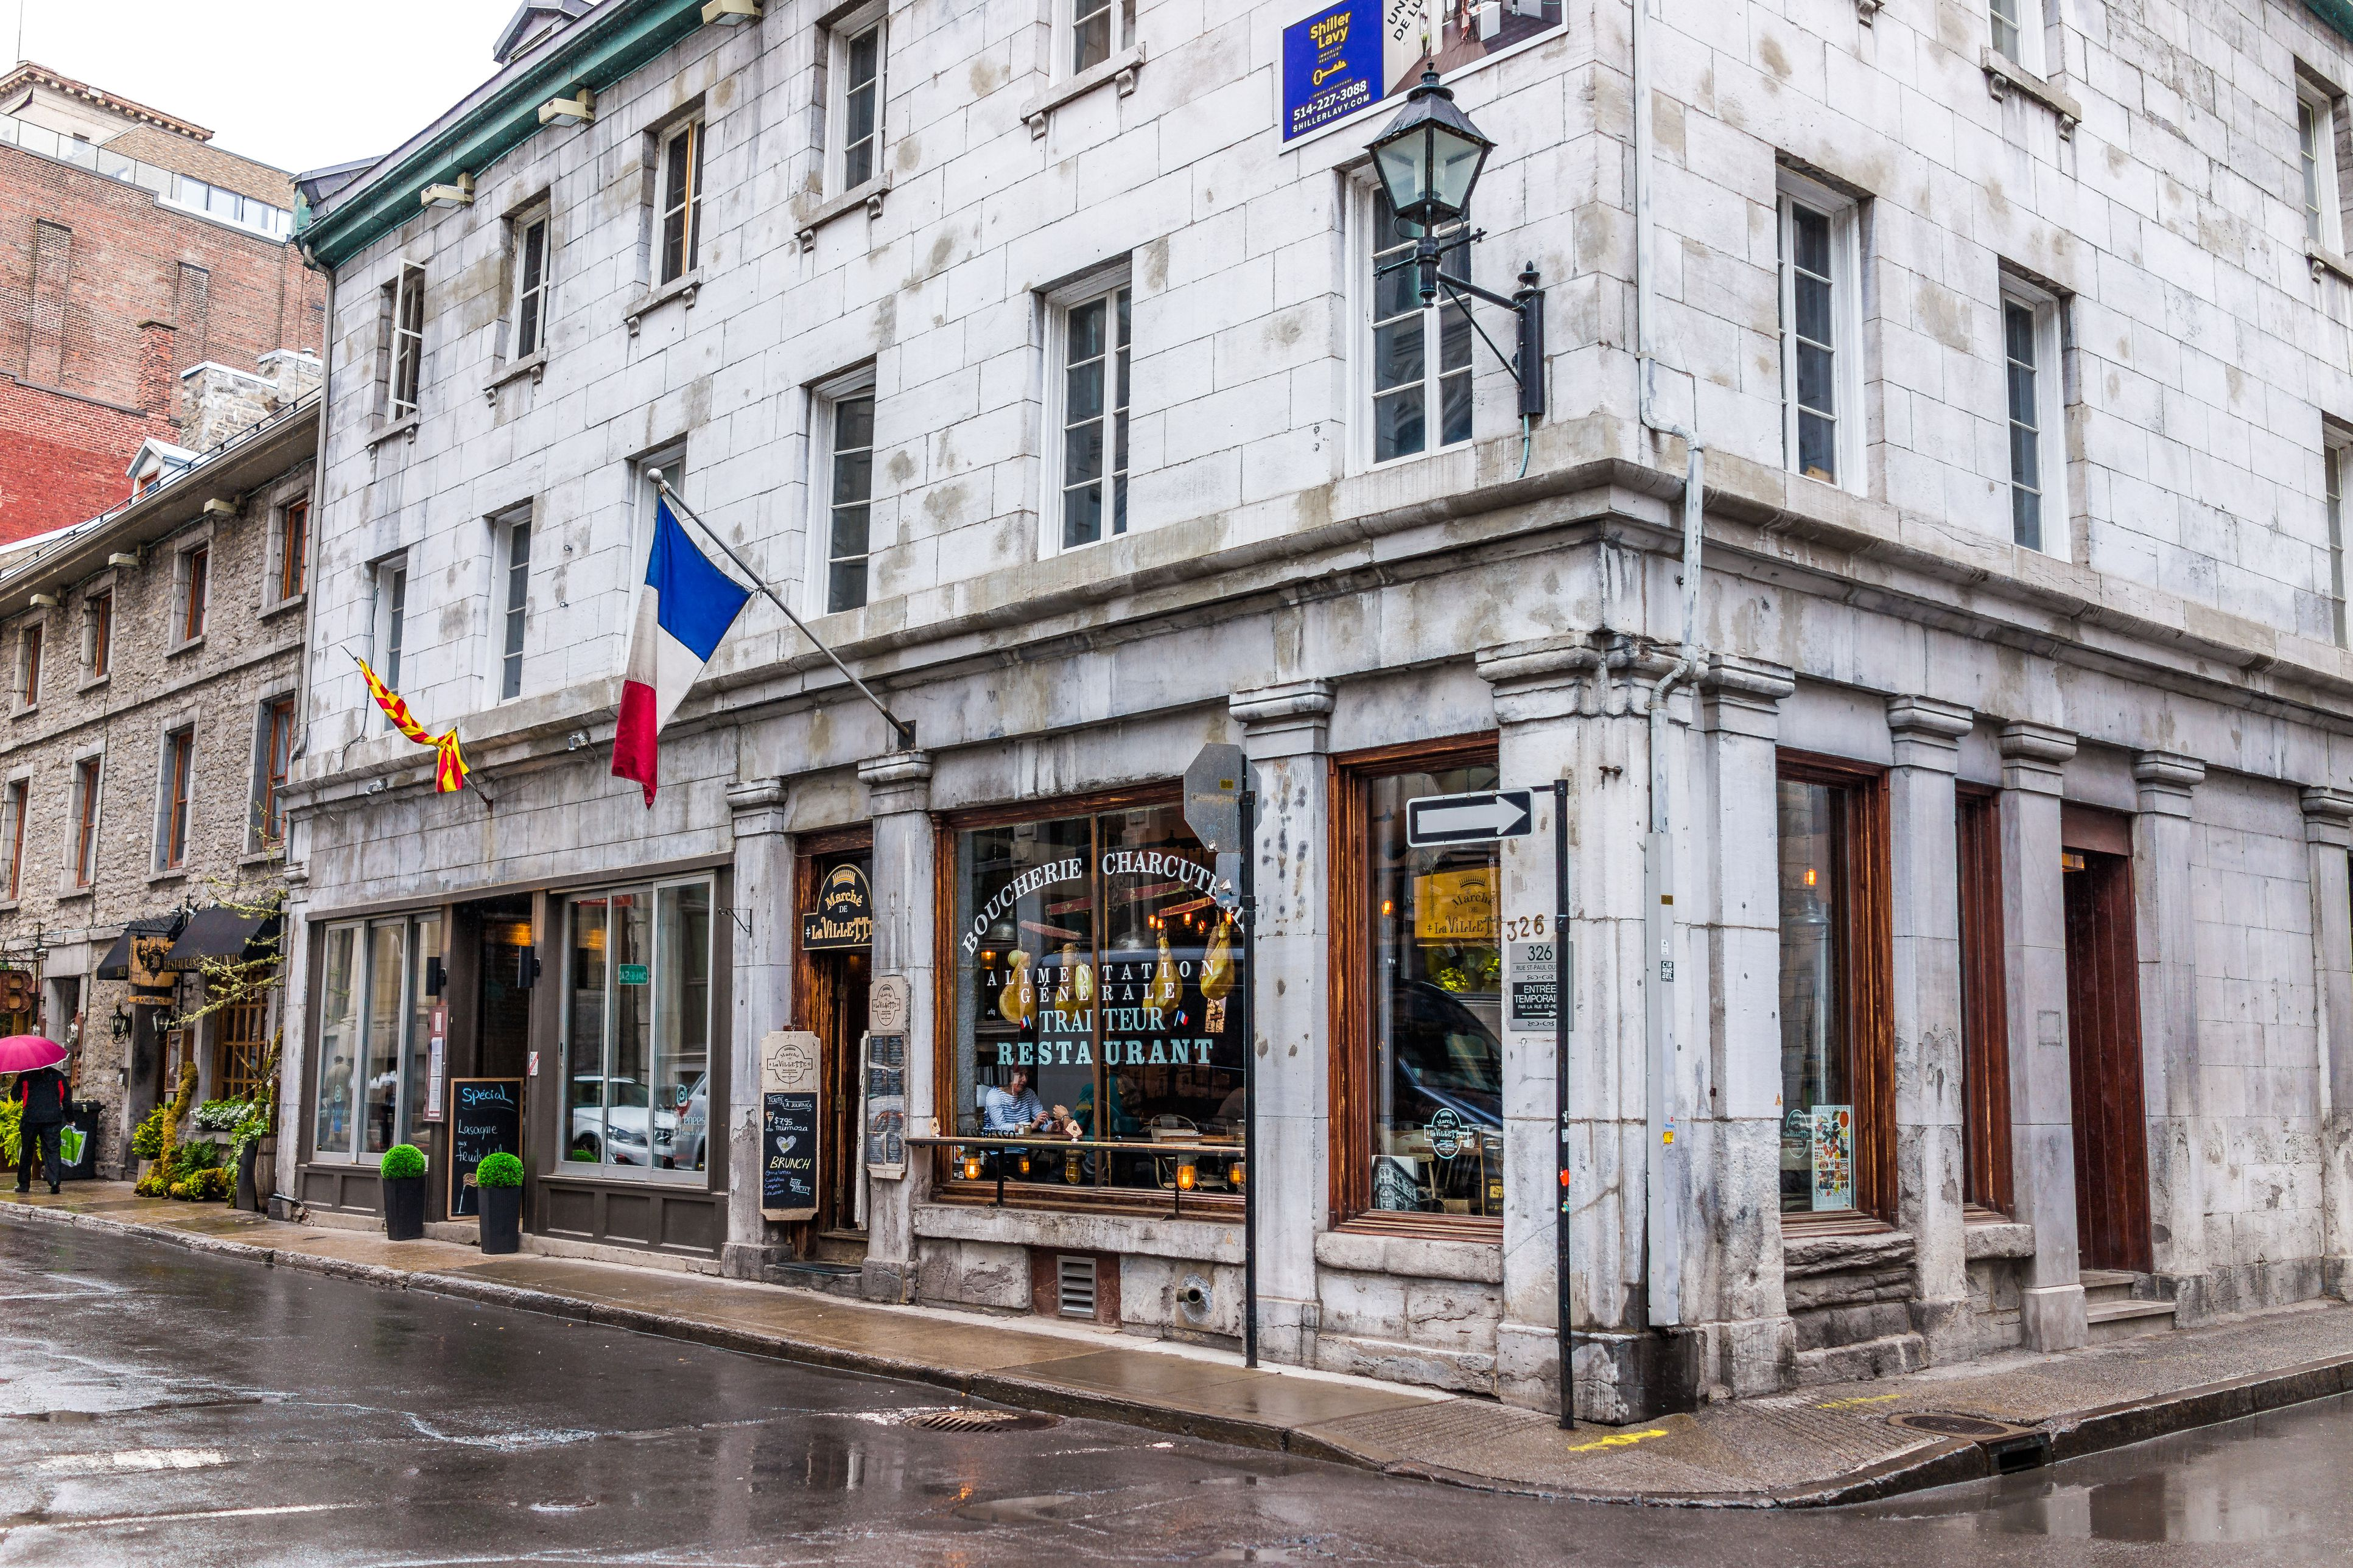 Downtown area of city in Quebec region with restaurants, butcher shop and cafe with French flag during wet rain on cloudy day